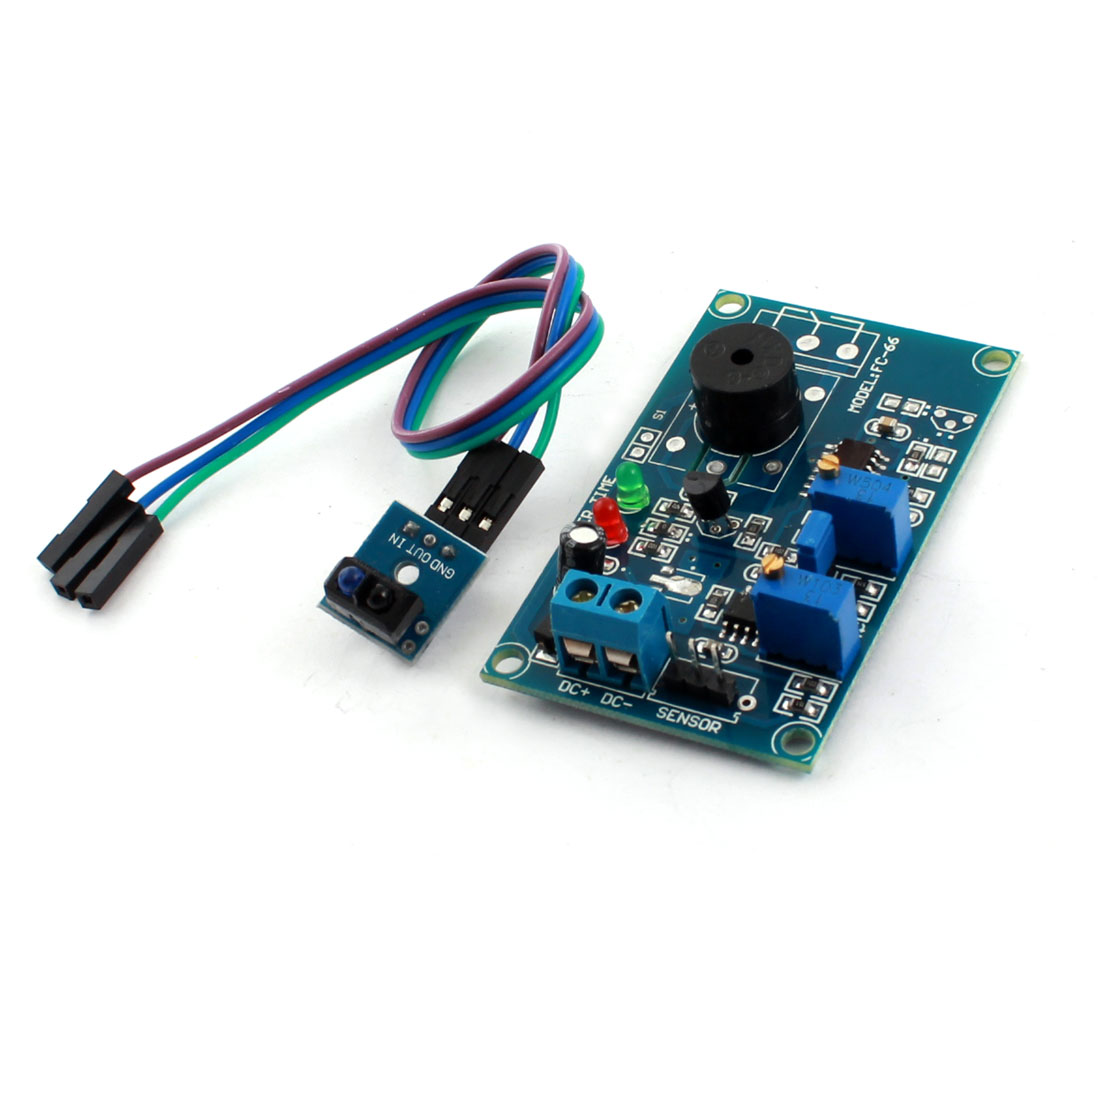 FC-66 TCRT5000 DC 5V 0-20S 0-3cm Infrared Reflection Light Detection Sensor Alarm Buzzer Time Delay Module Green